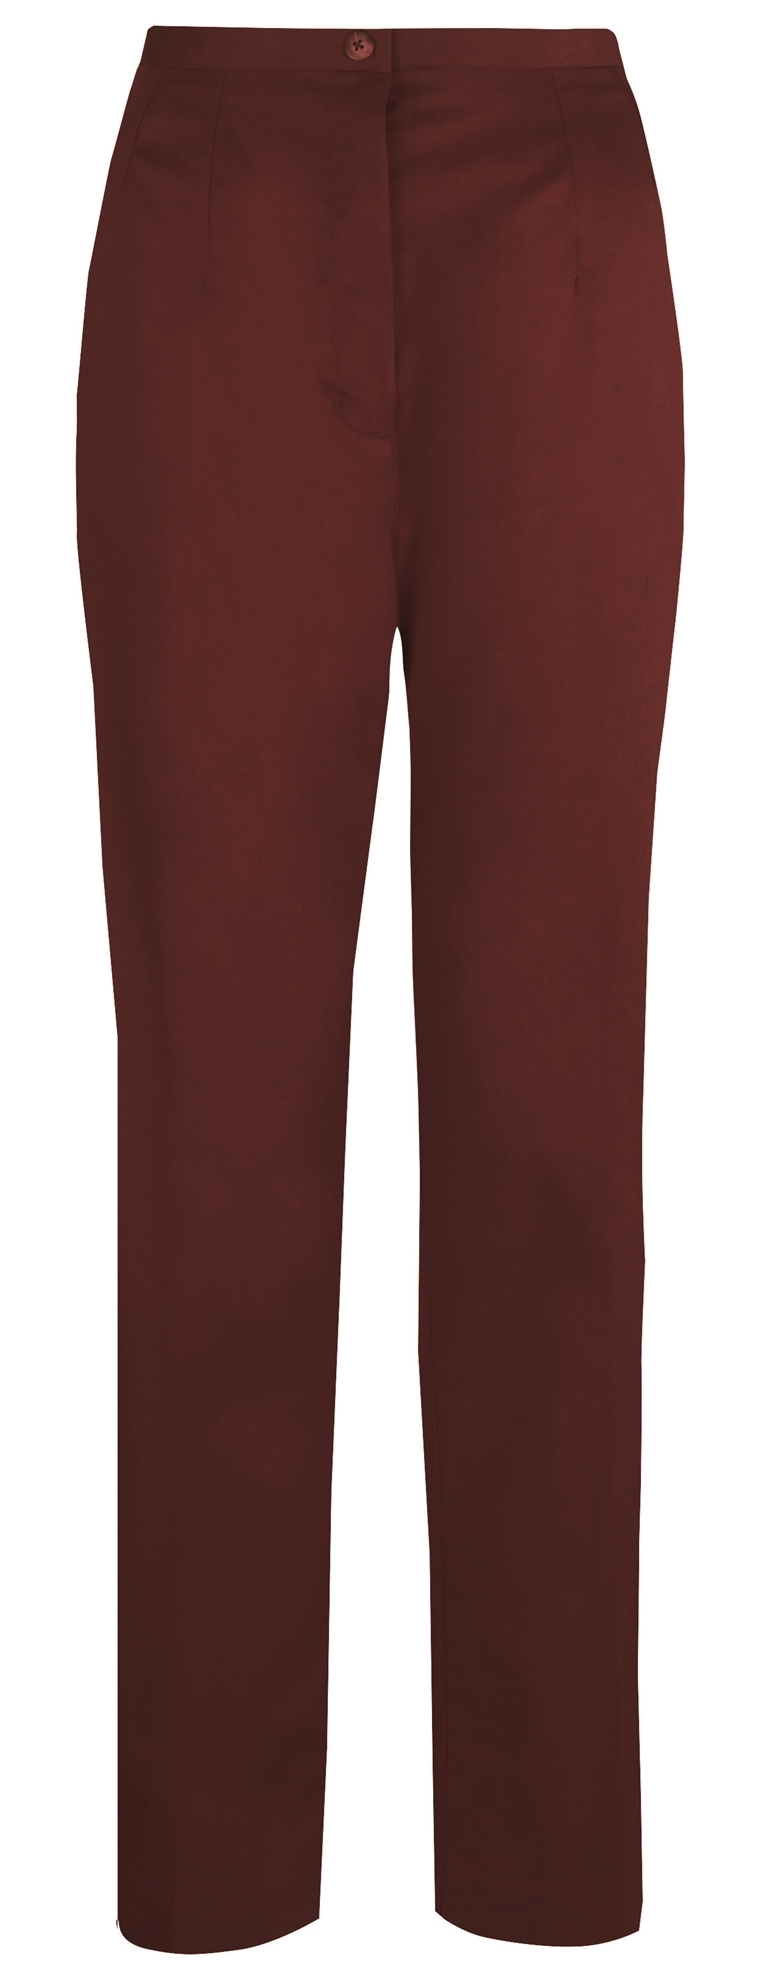 Picture of Flexi-Stretch Straight Leg Trousers - Burgundy